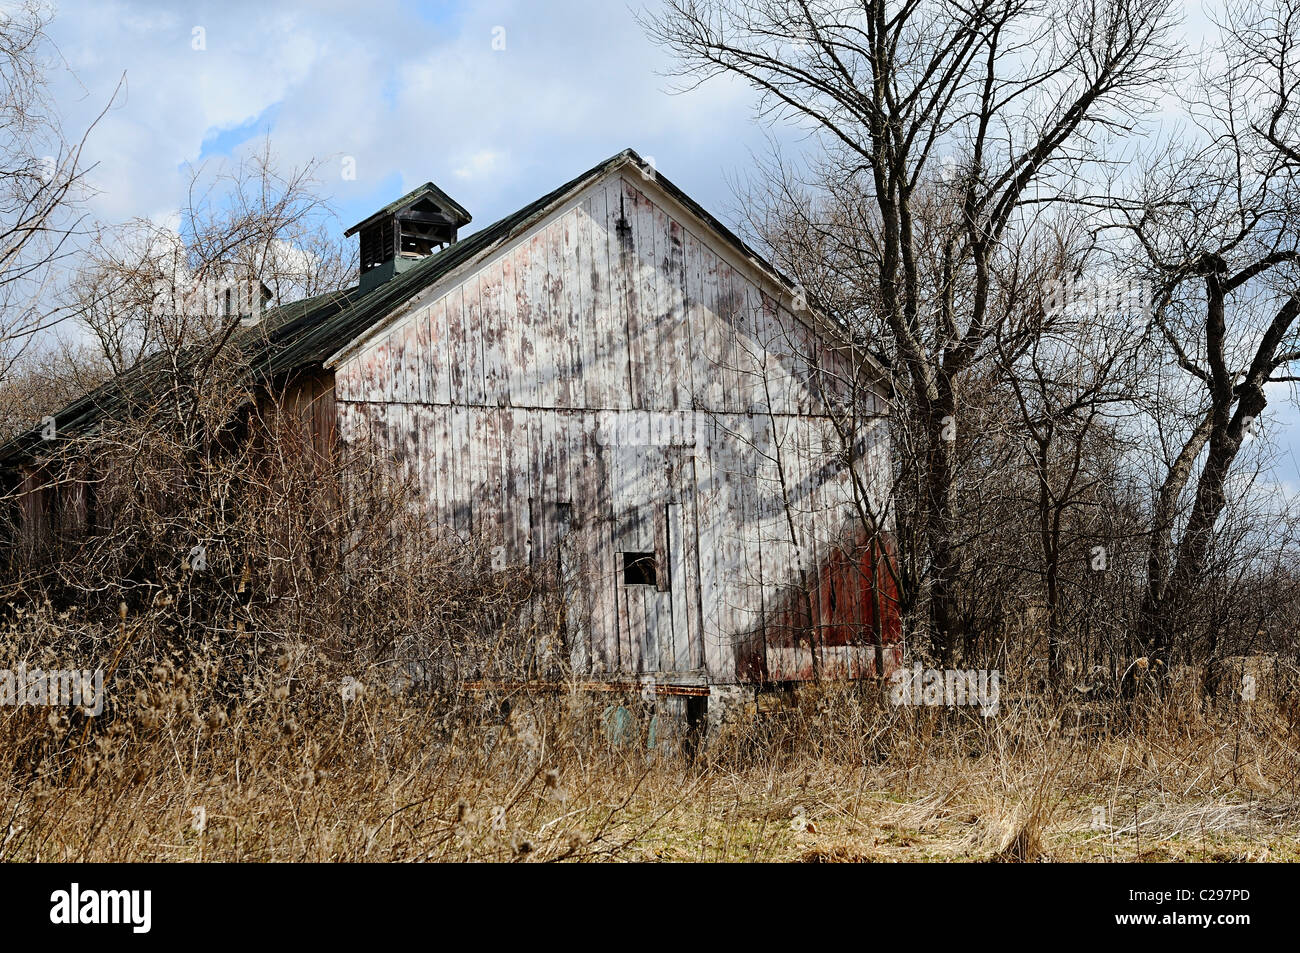 Decaying and neglected barn in Northern Illinois, USA - Stock Image